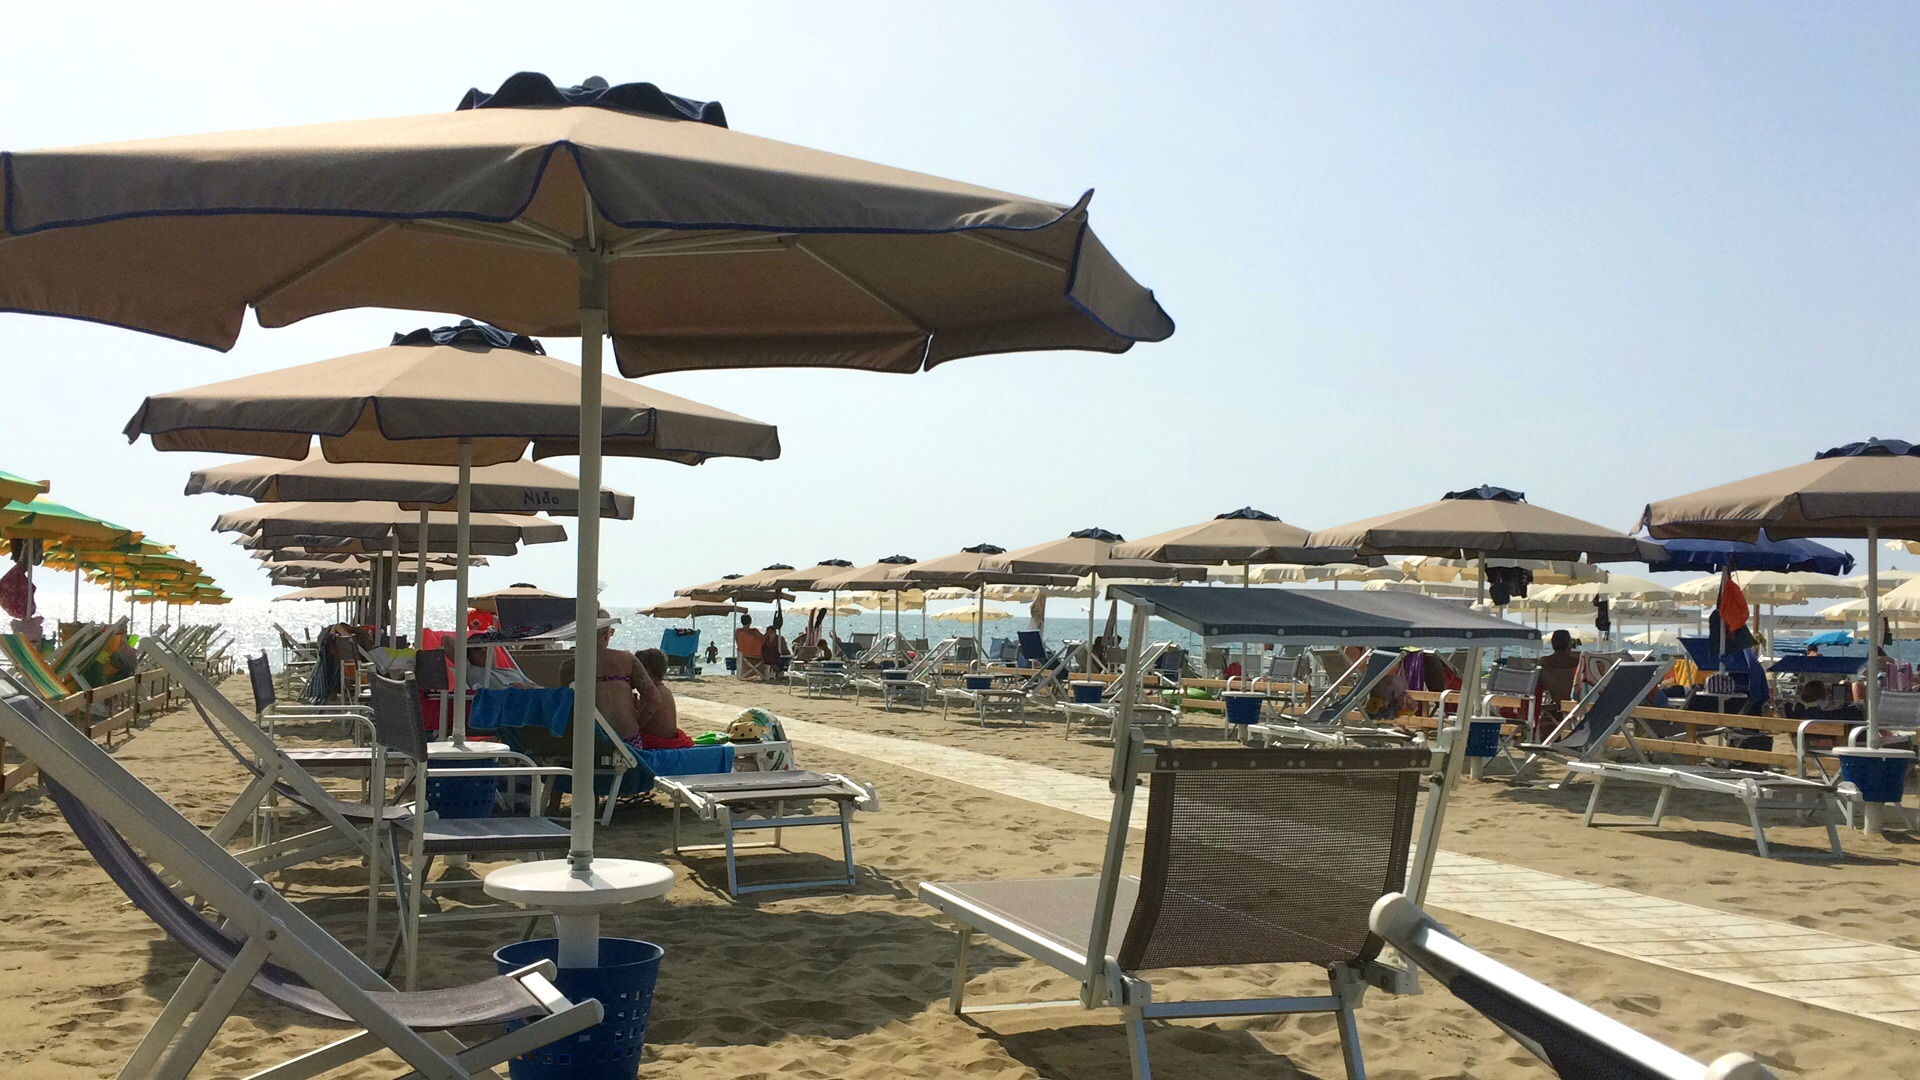 The Beach at Viareggio. Most Italian beaches are not free, you have to rent an umbrella and a couple chairs, usually around 30euro per day.